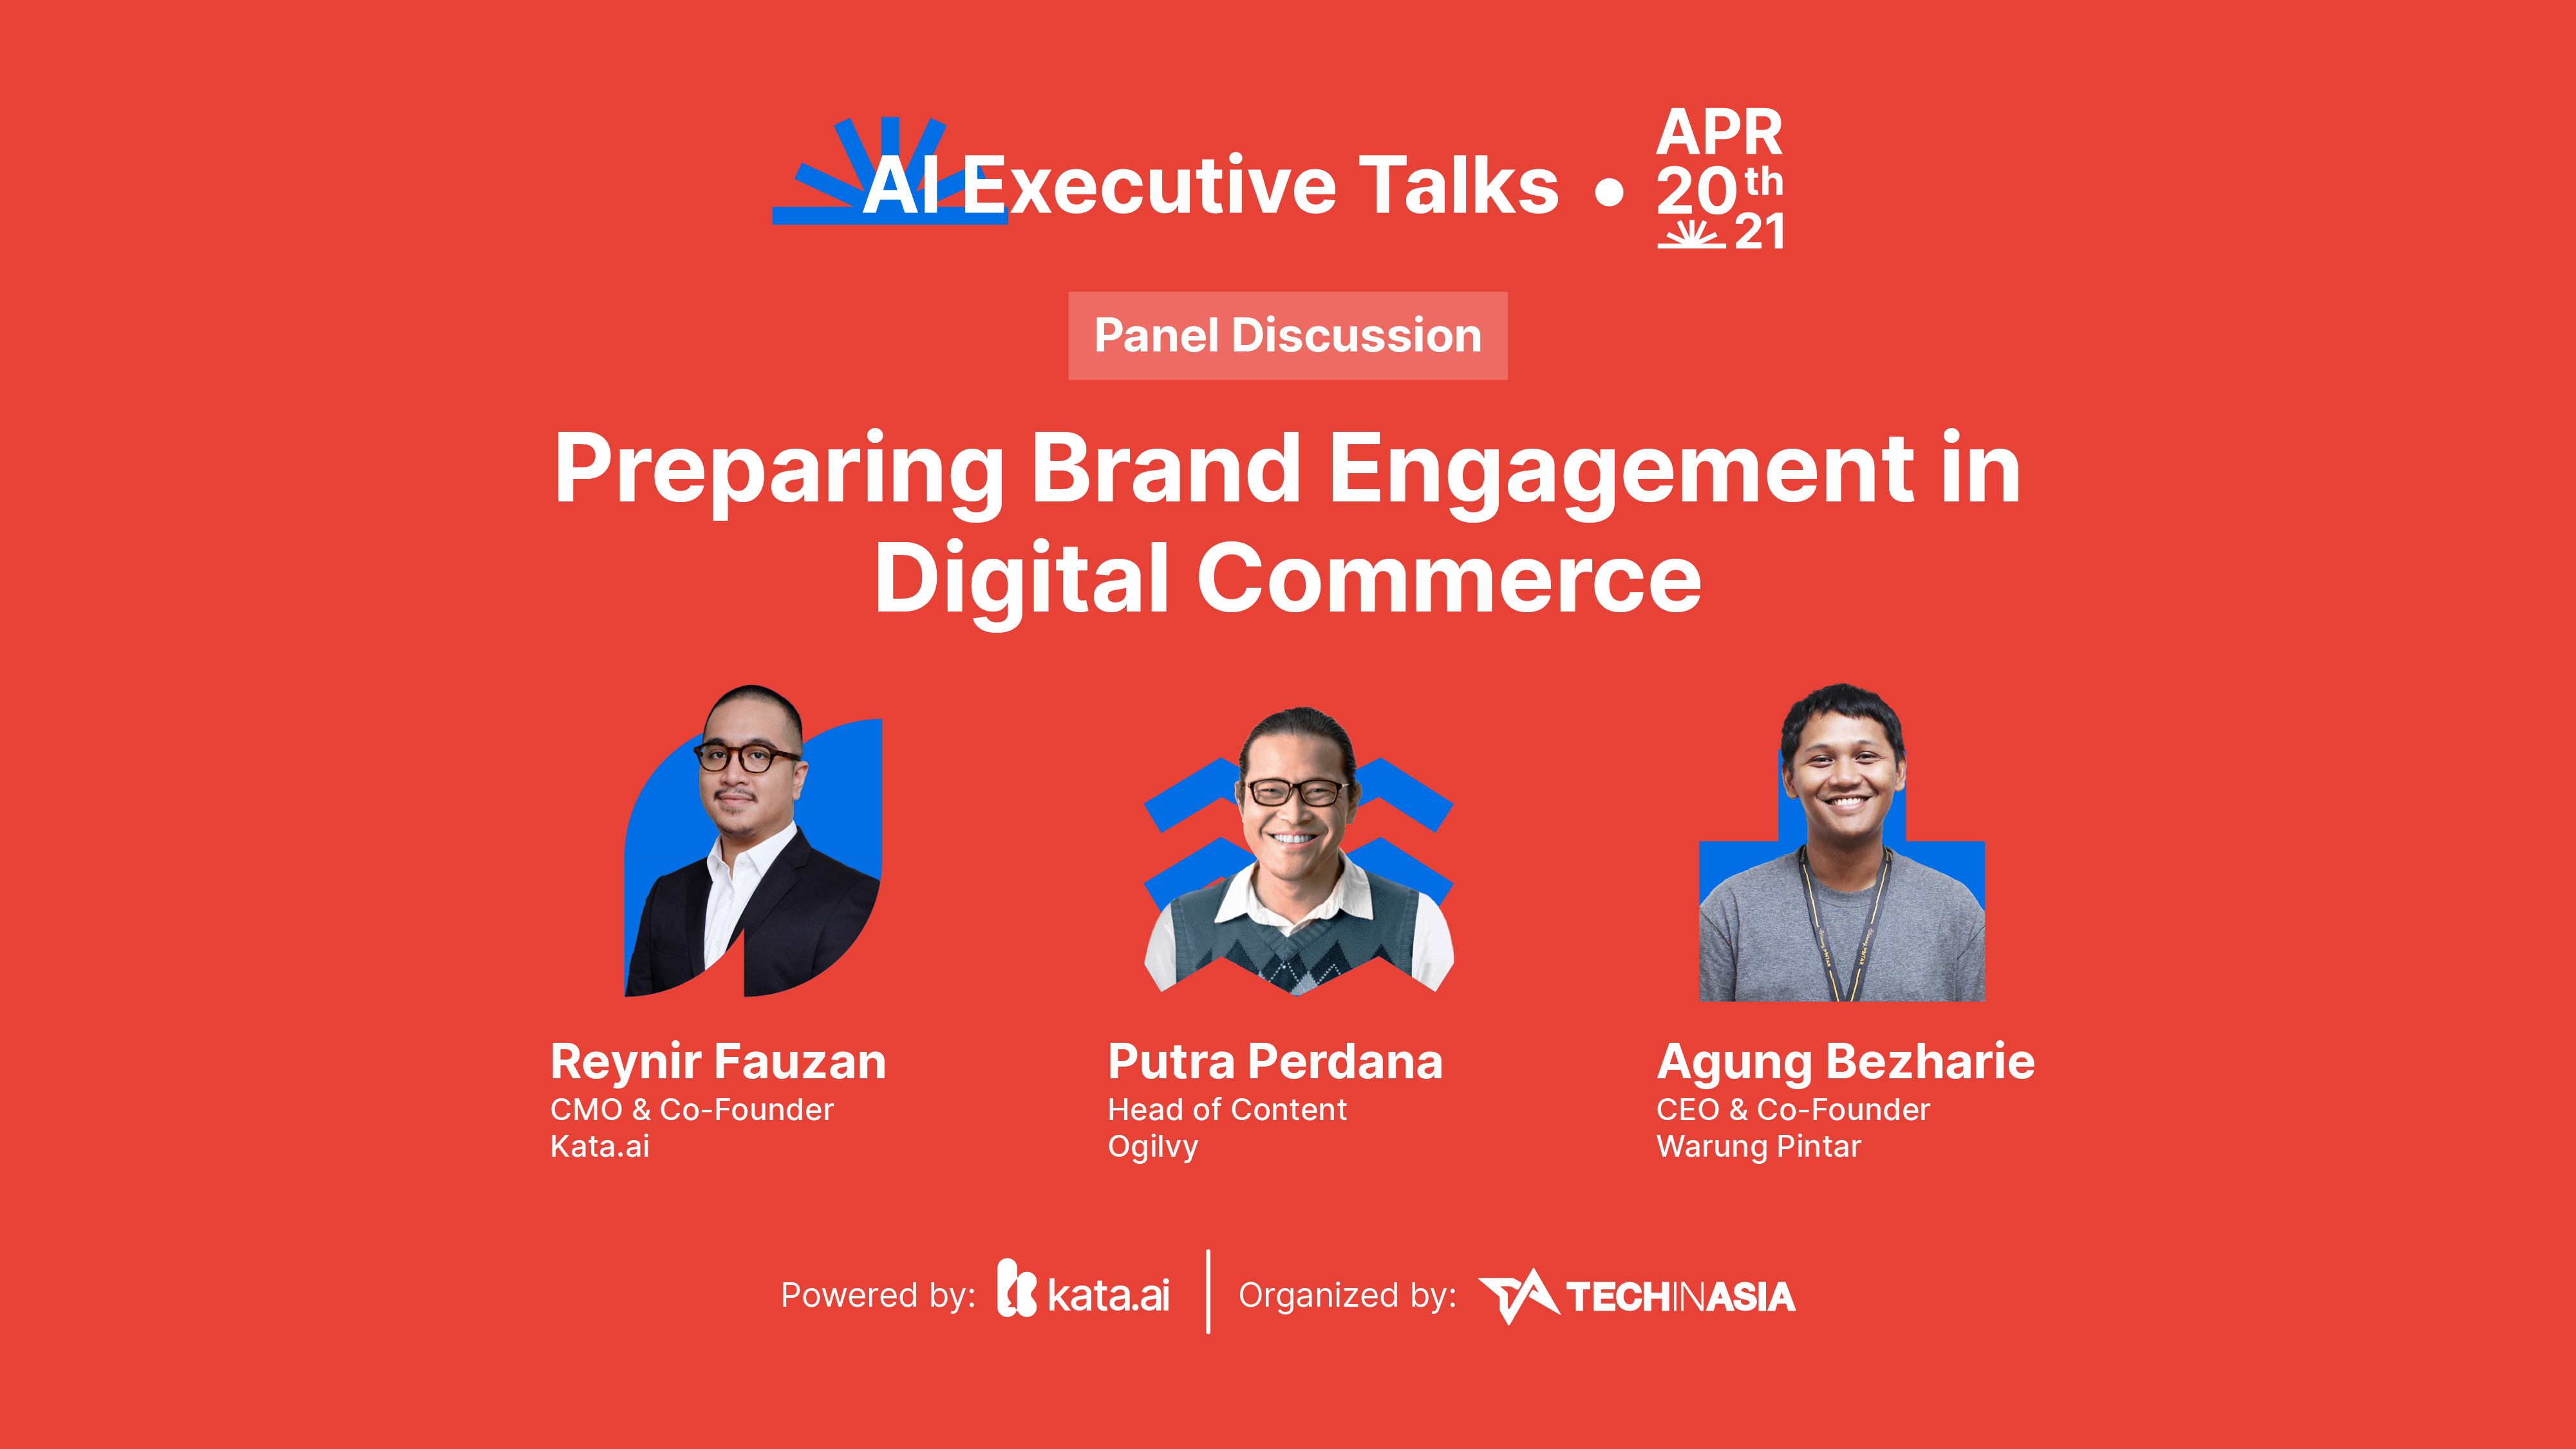 Kata.ai CMO and Co-Founder Reynir Fauzan invited Putra Perdana, Head of Content Studio at Ogilvy Indonesia, and Agung Bezharie, CEO and Co-Founder of Warung Pintar to discuss preparing brand engagement in digital commerce for the first panel discussion of Kata.ai's AI Executive Talks event.